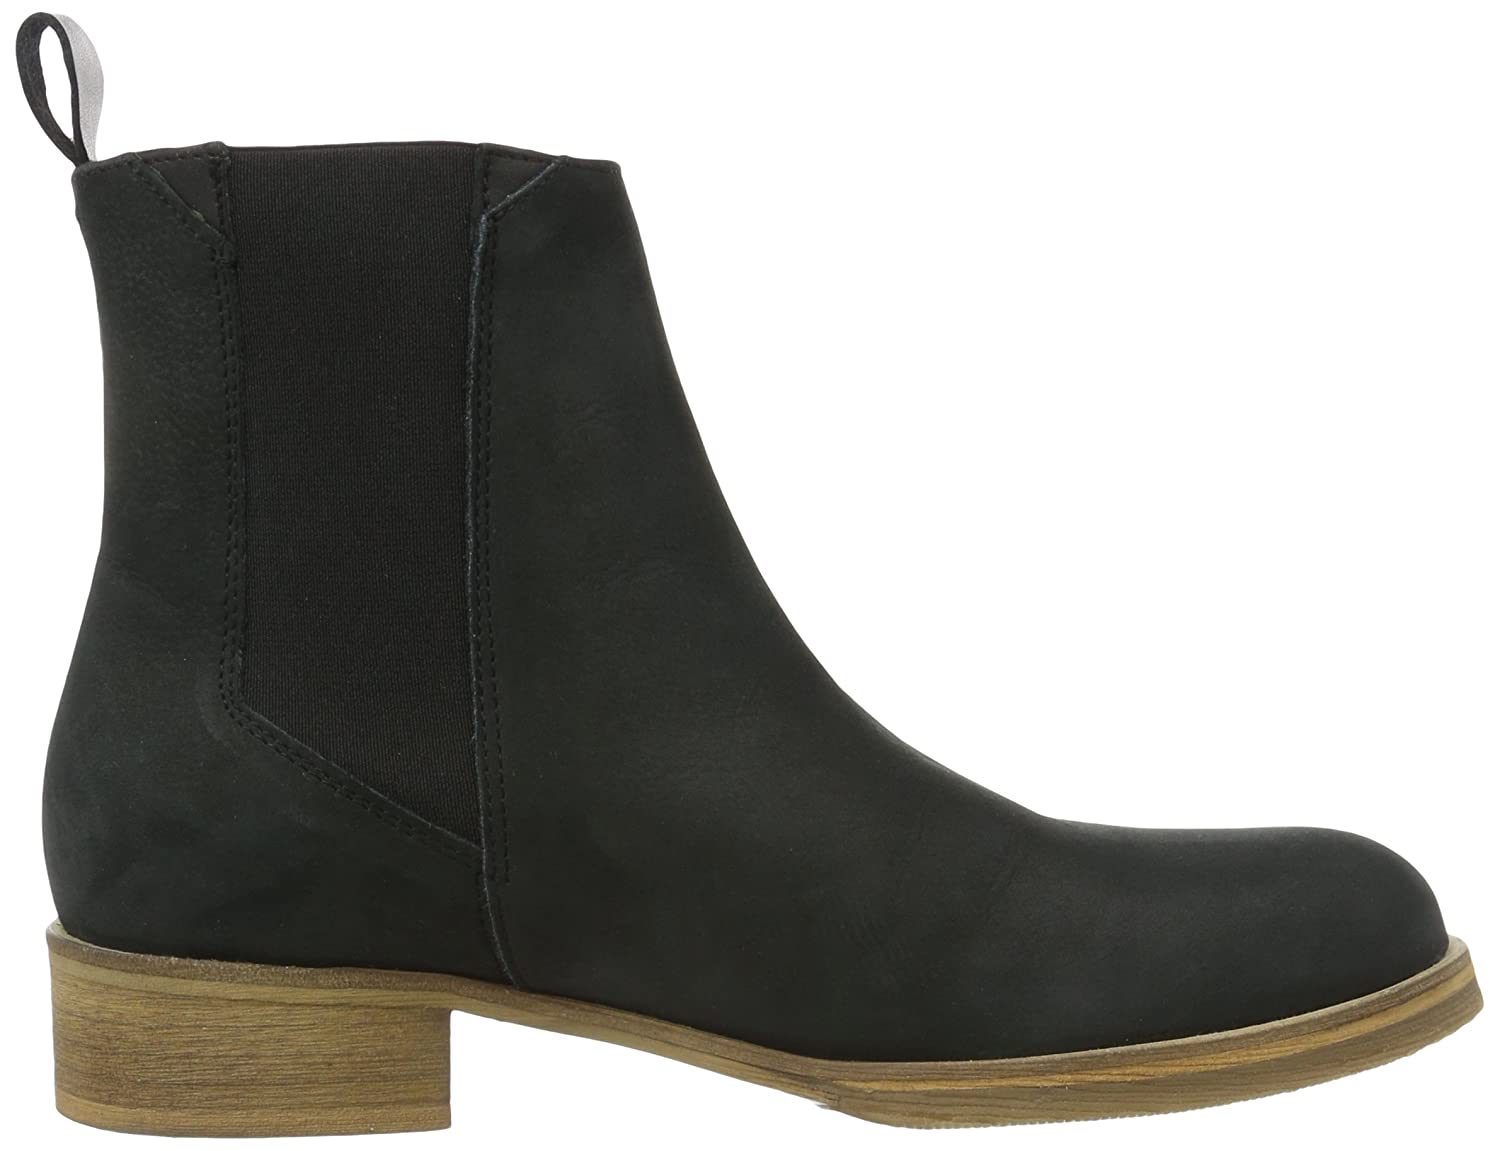 Liebeskind Berlin Women's Ls0120 Grain Ankle Boots: Amazon.co.uk: Shoes &  Bags